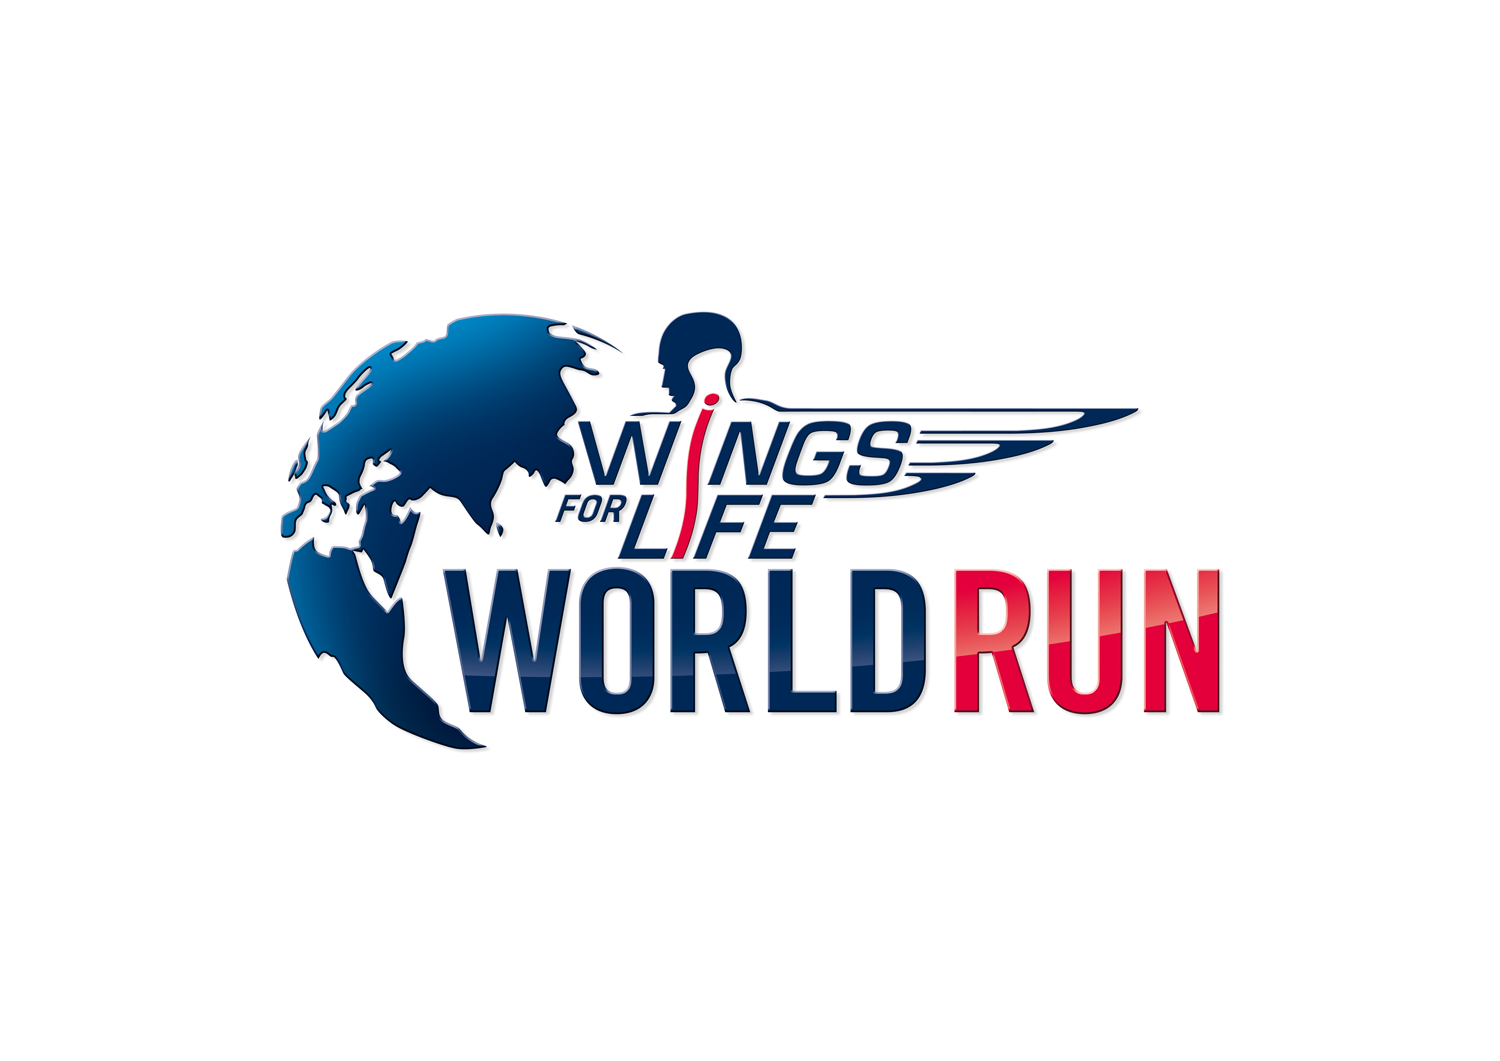 Wings For Life World Run – biegniemy by pomagać!